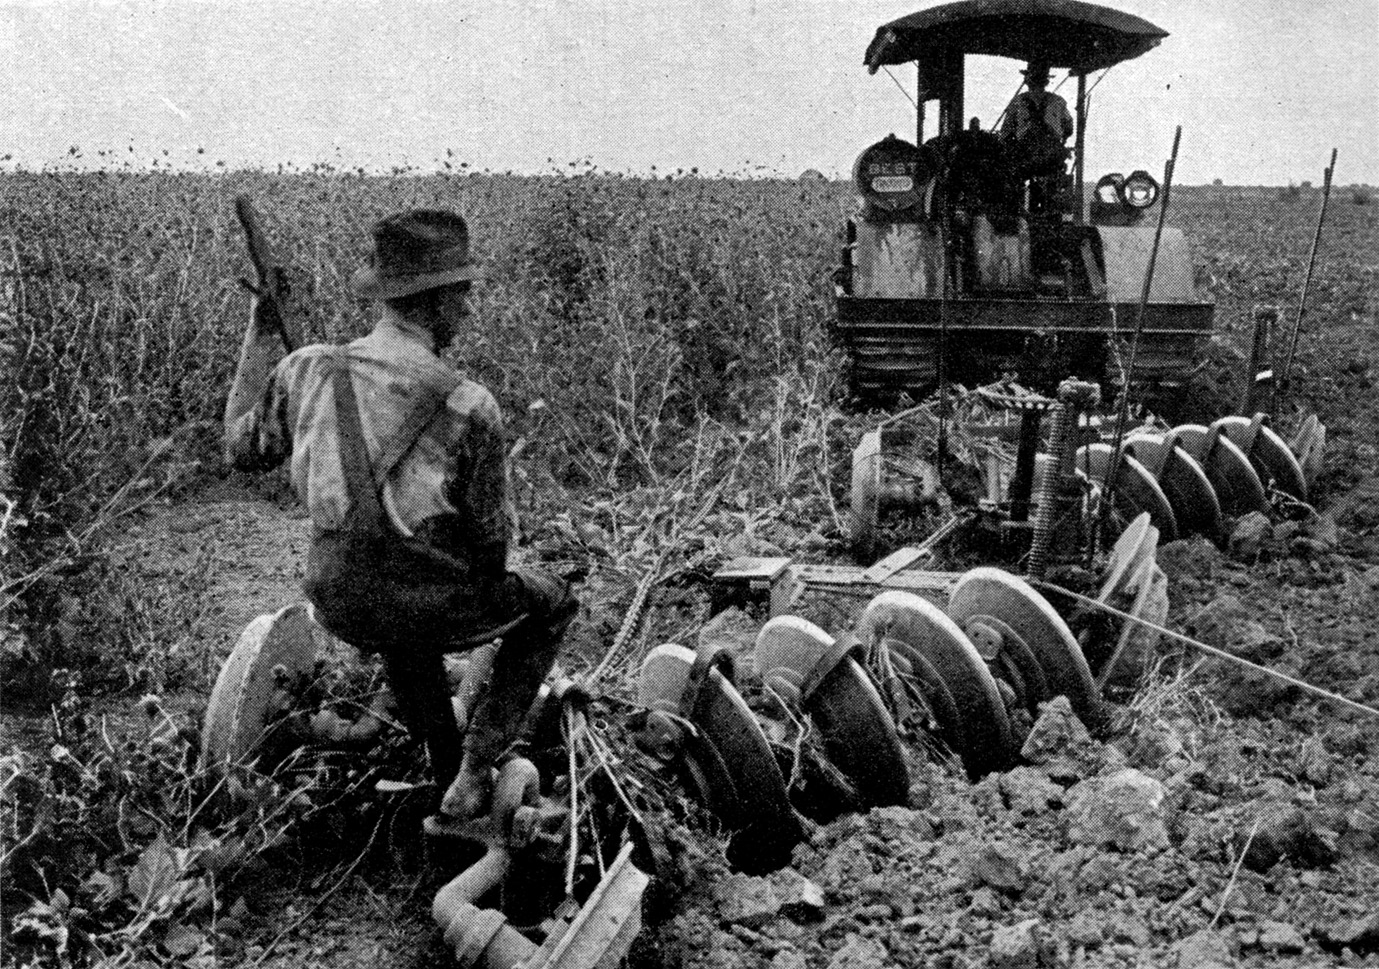 http://upload.wikimedia.org/wikipedia/commons/8/8a/Agriculture_(Plowing)_CNE-v1-p58-H.jpg